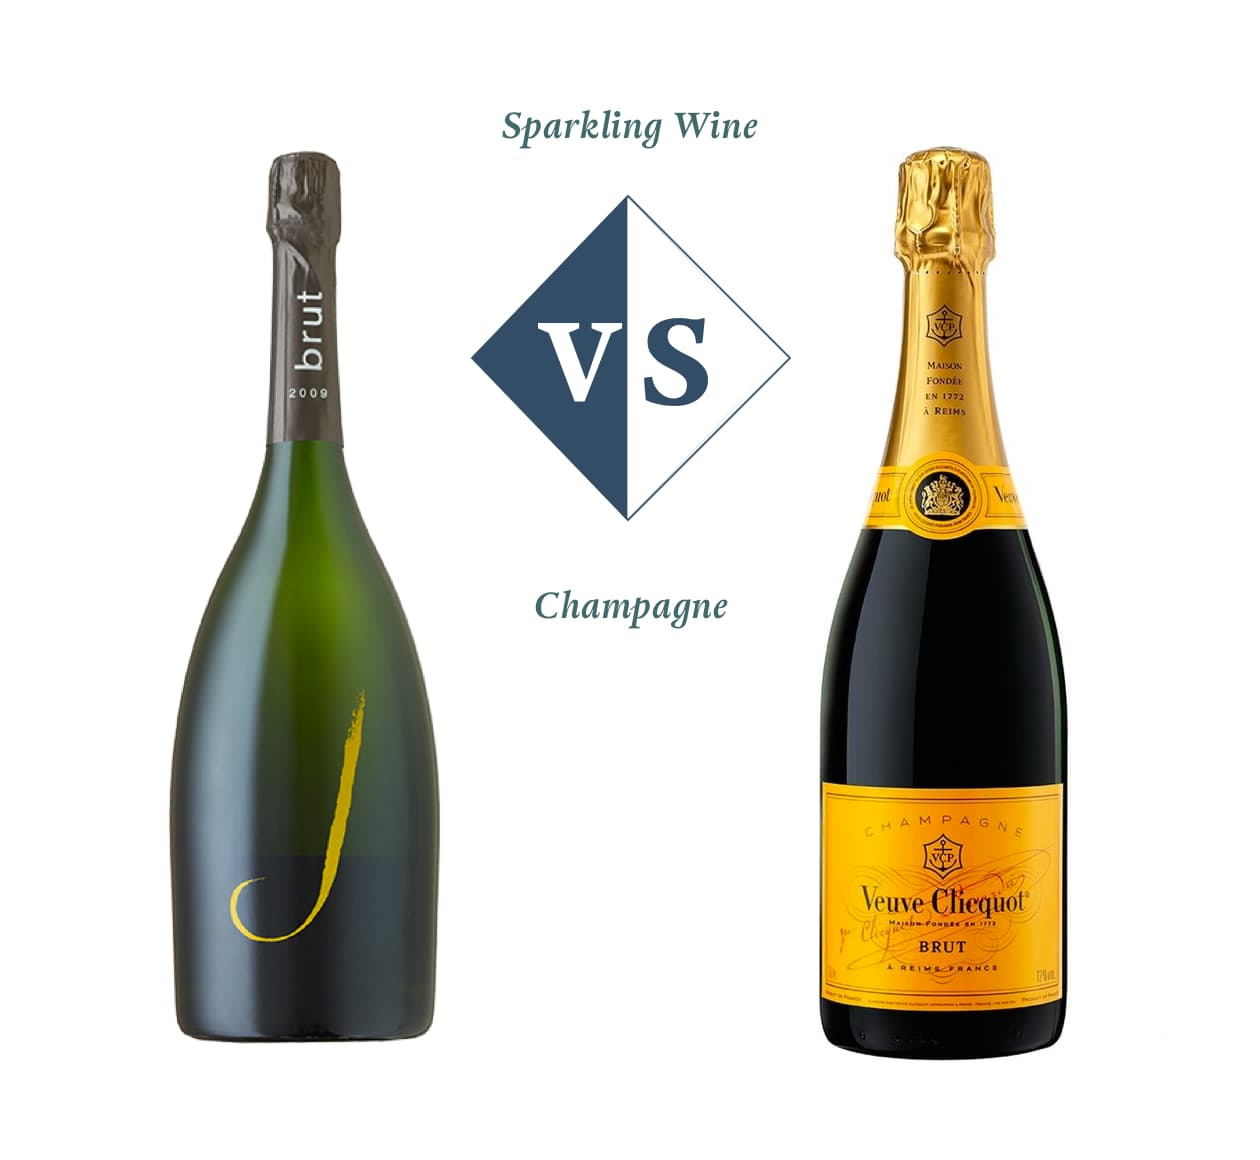 Boost your sparkling wine IQ - sparkling wine vs champagne